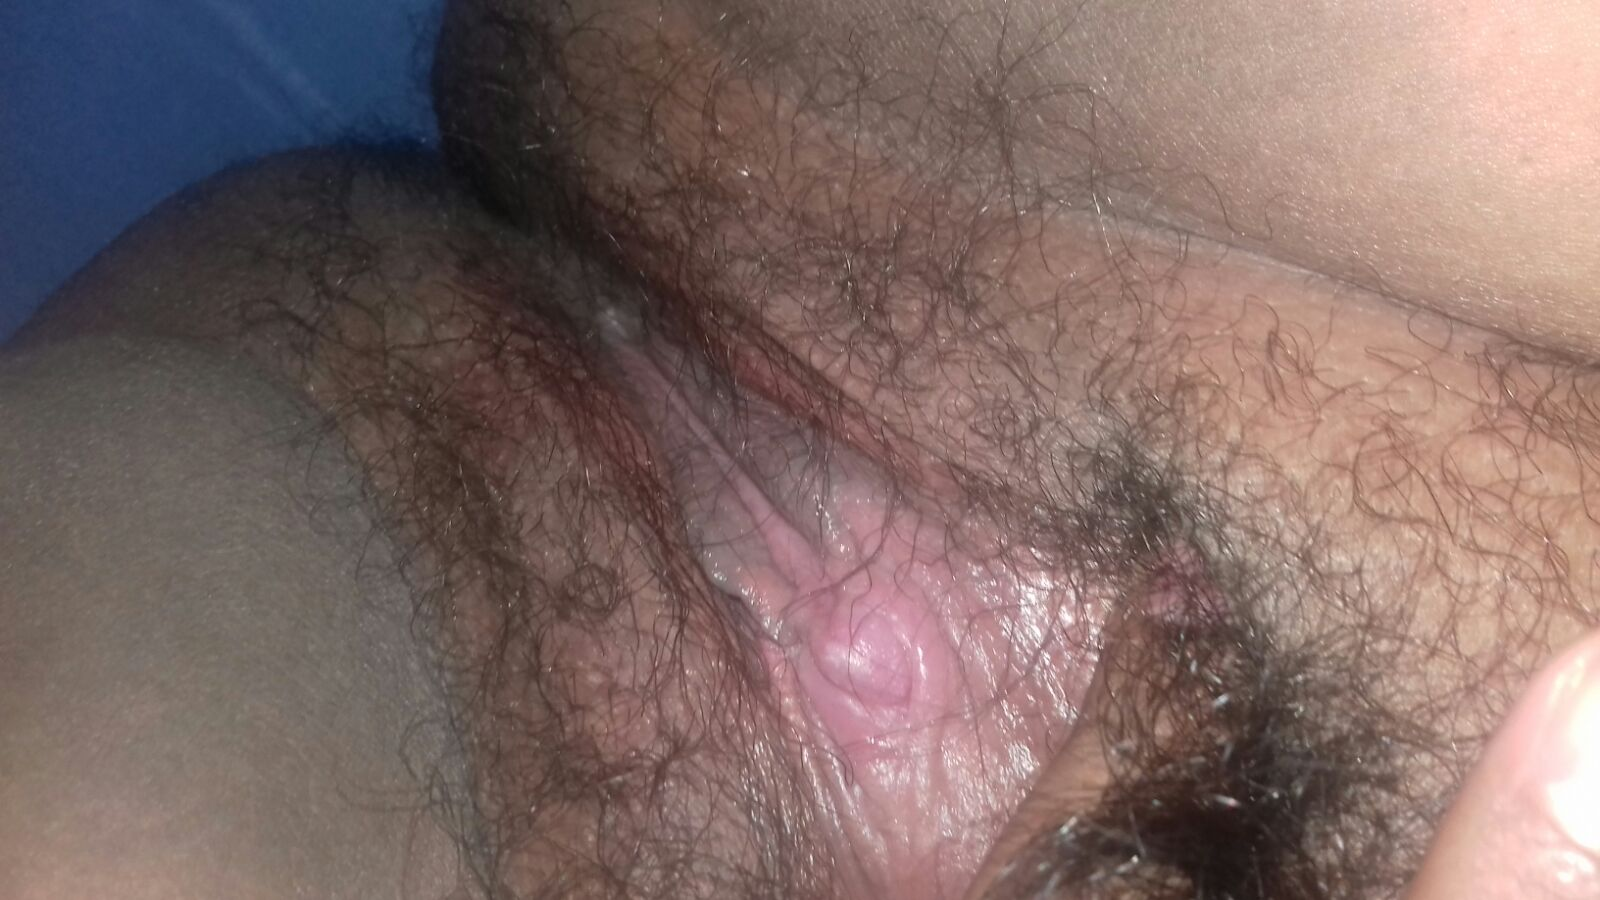 fotos de vaginas reales